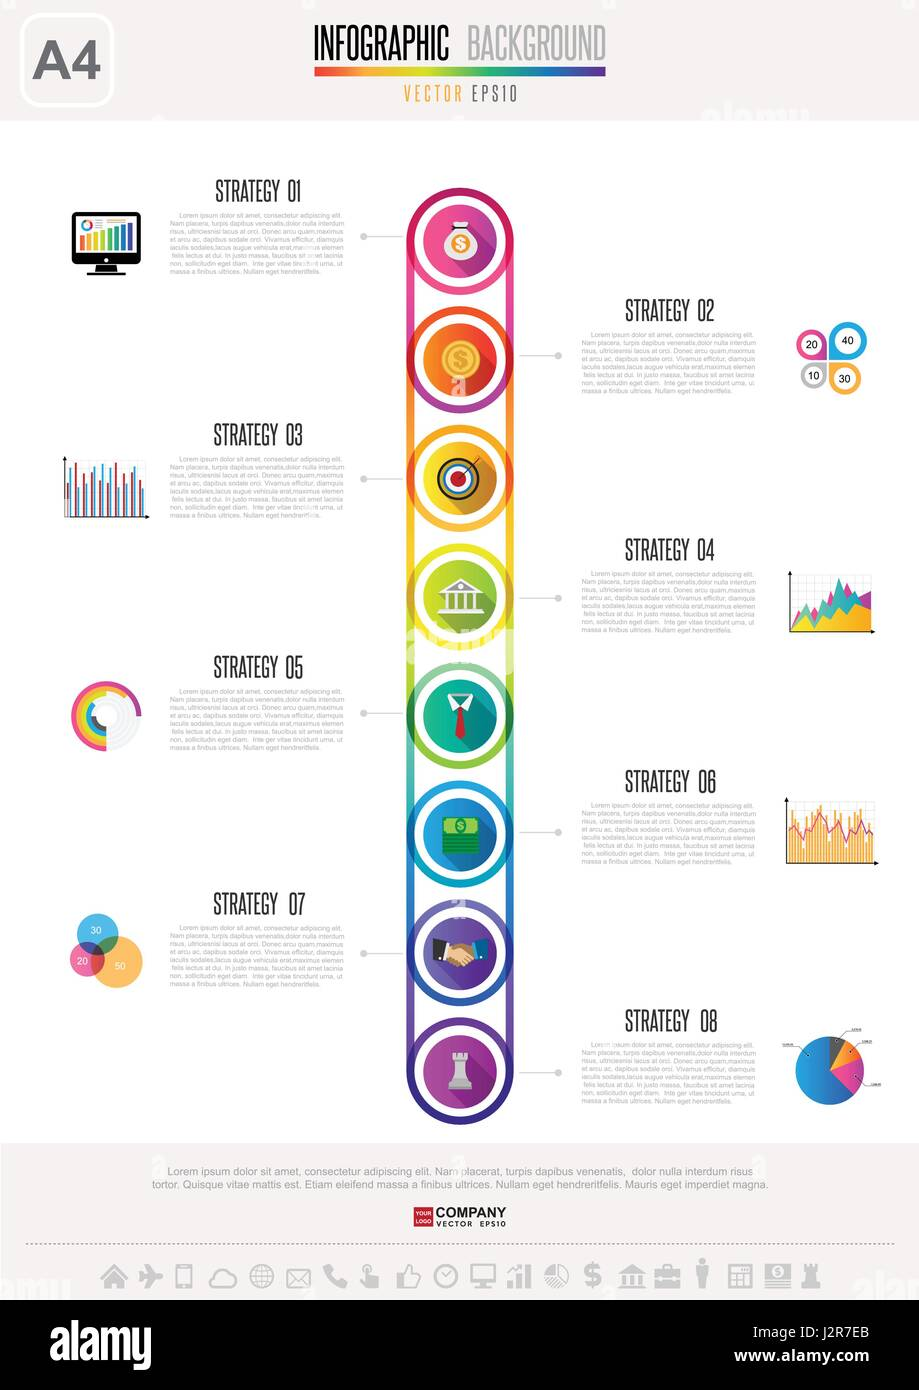 Infographic design element .Vector eps10 - Stock Image